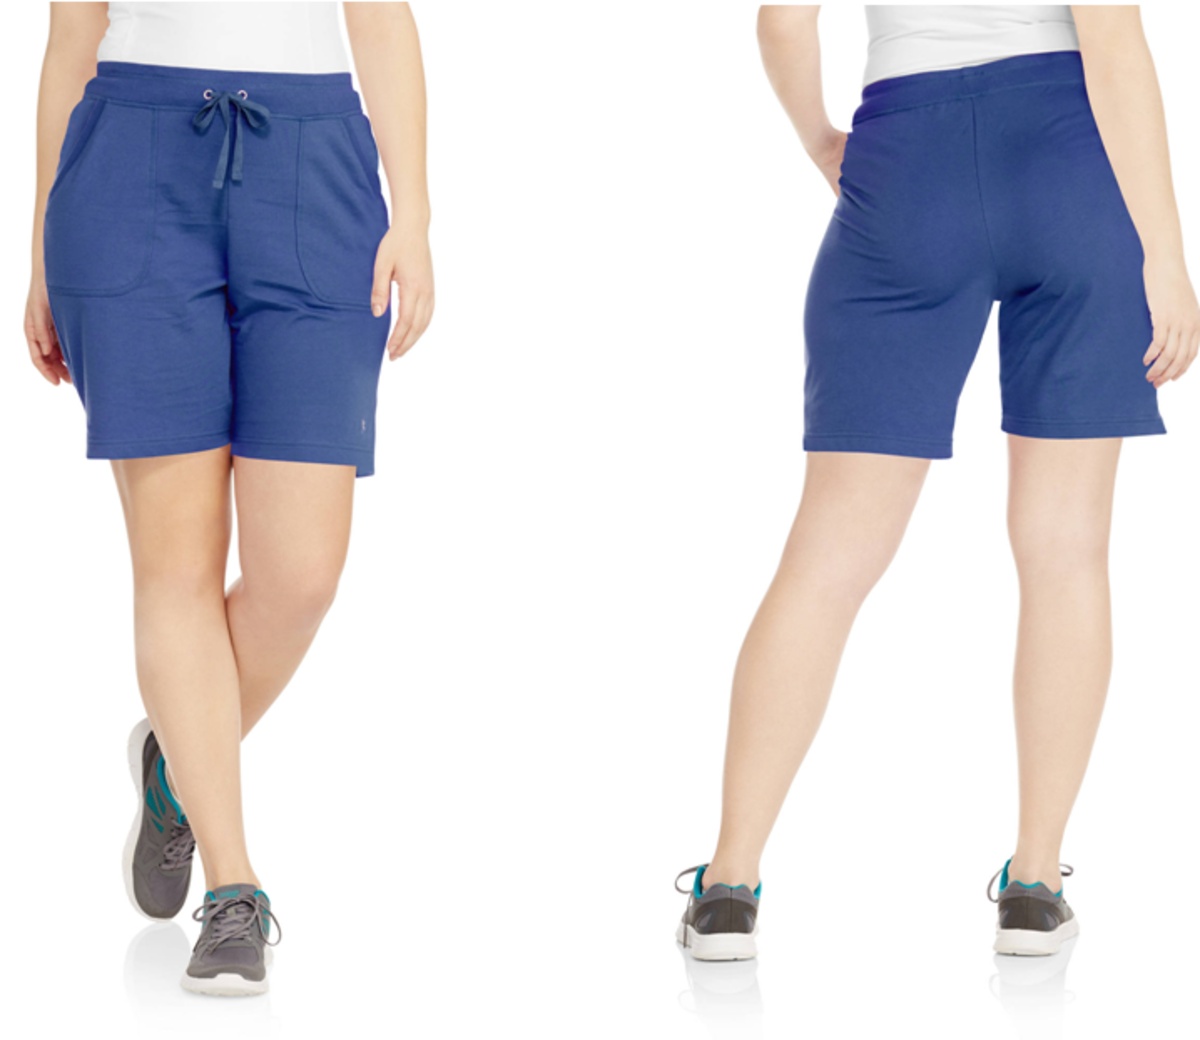 cotton-polyester French terry Bermuda shorts with drawstring waistband and 2 side pockets